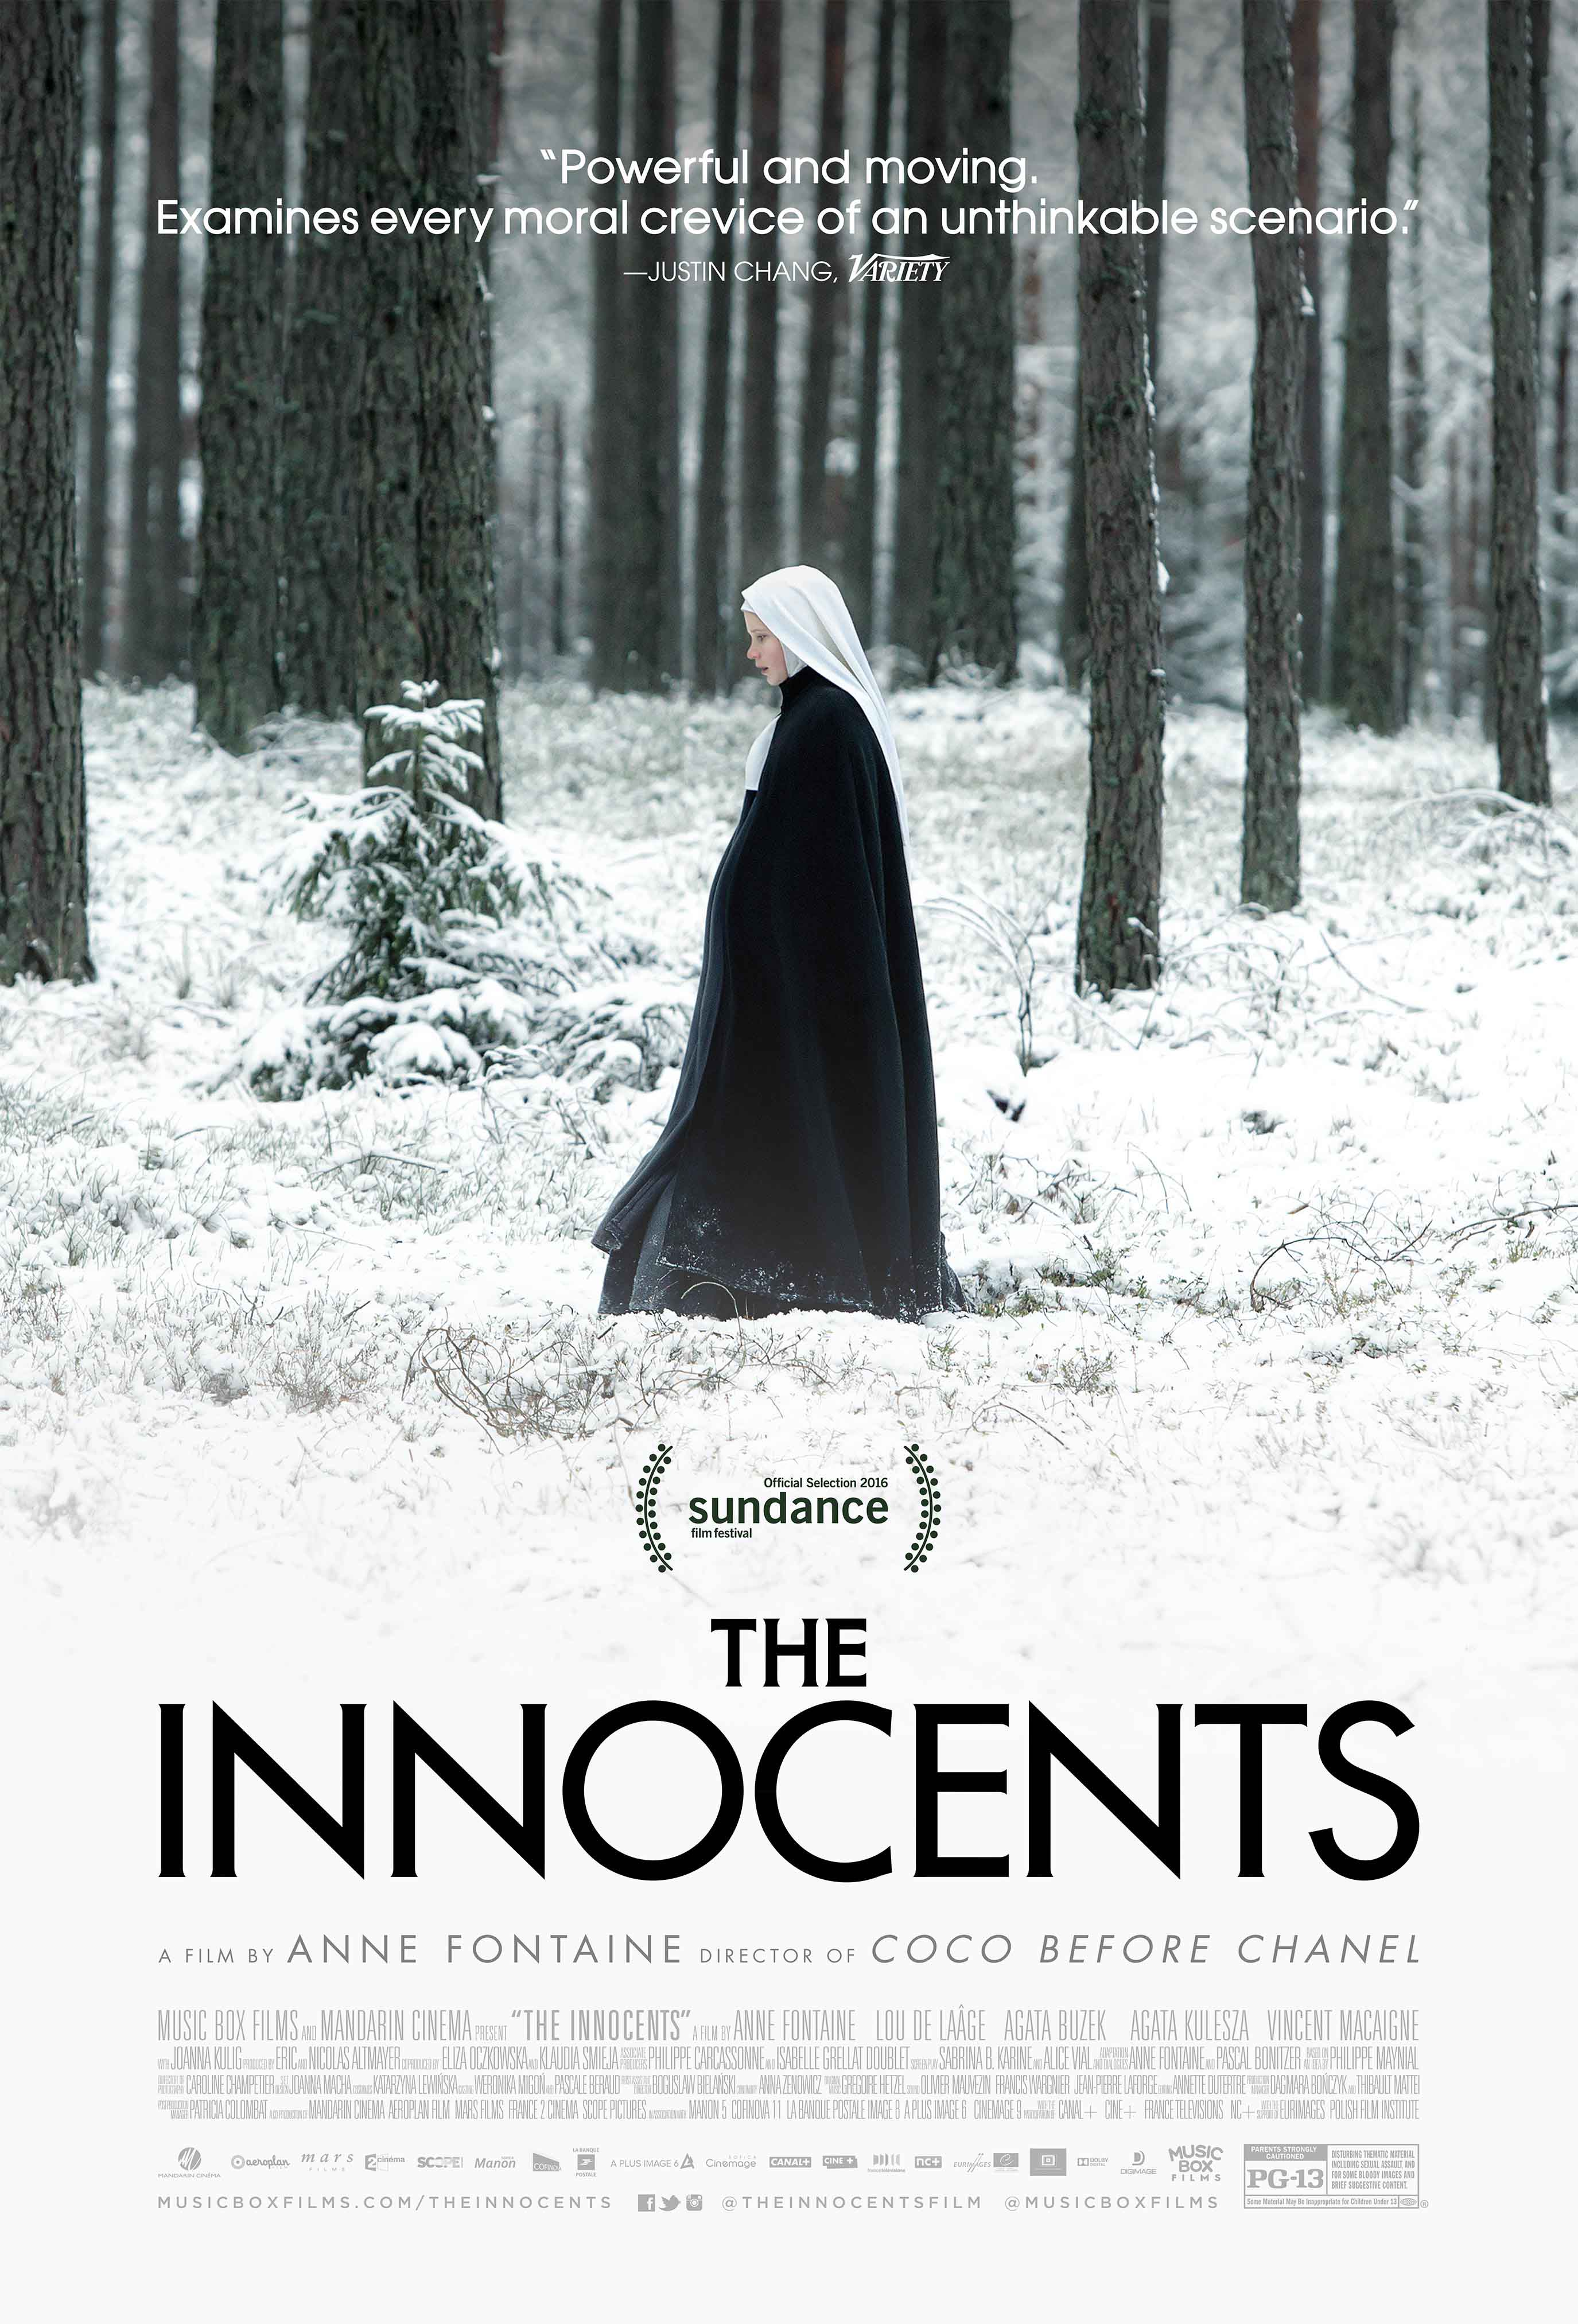 innocents poster compressed